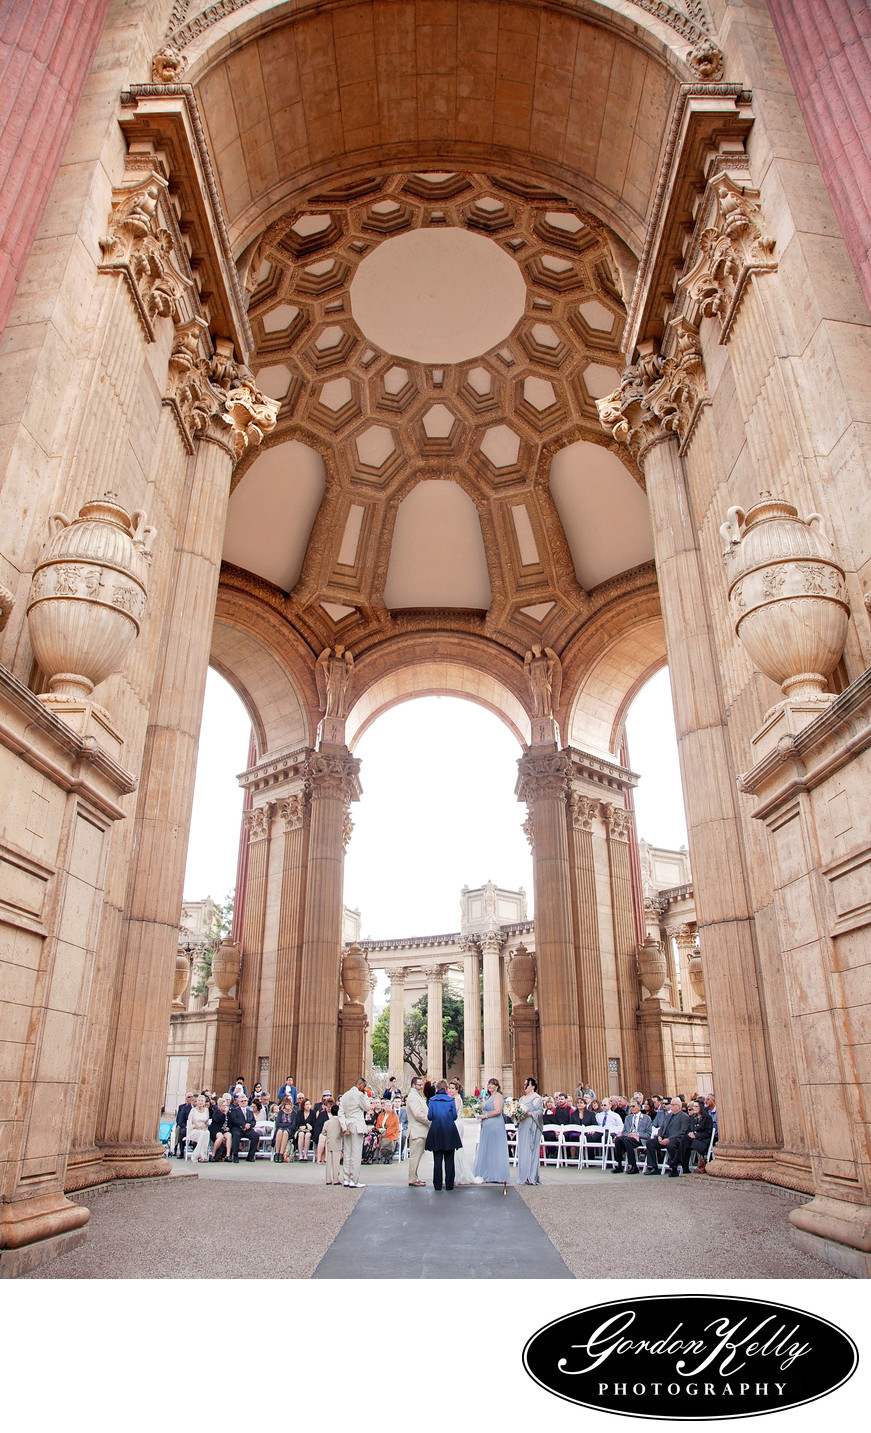 Palace of Fine Arts wedding photographer